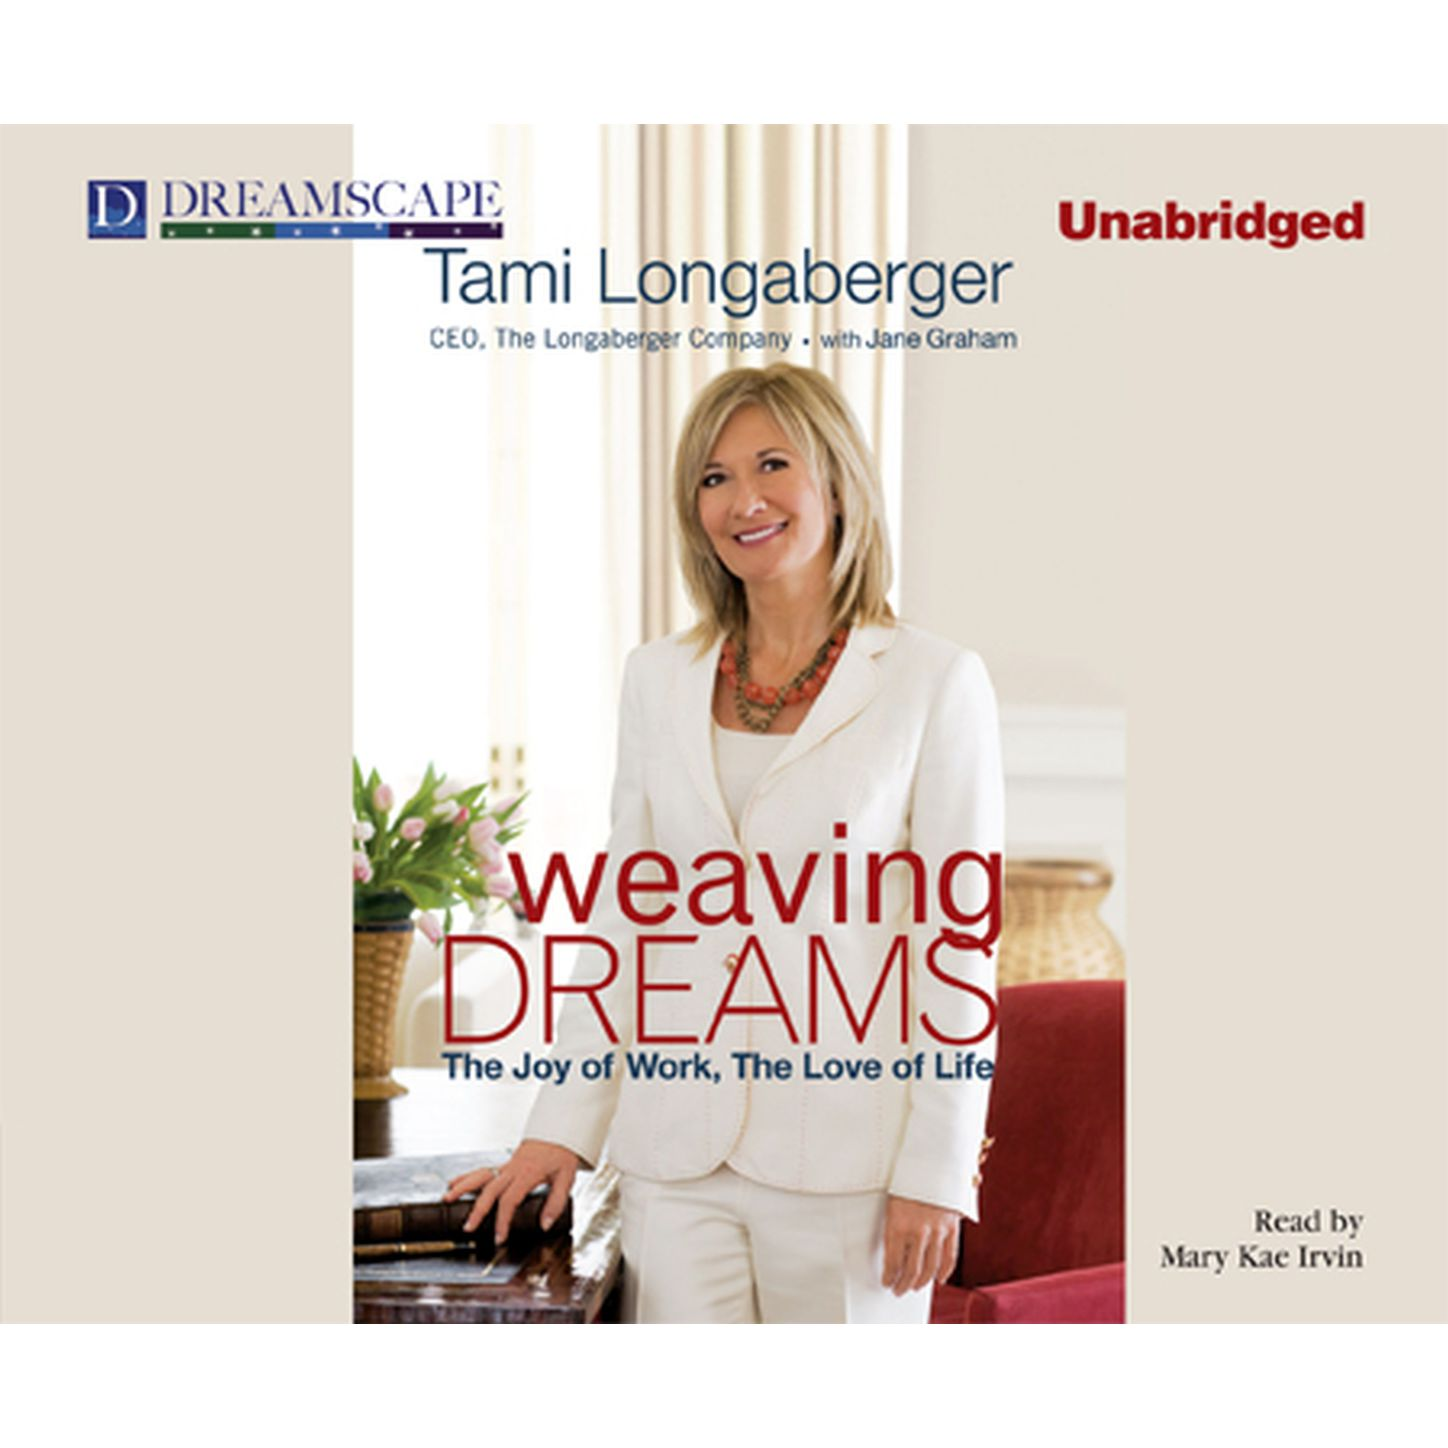 Tami Longaberger Weaving Dreams - The Joy of Work, The Love of Life (Unabridged) the daughters of joy